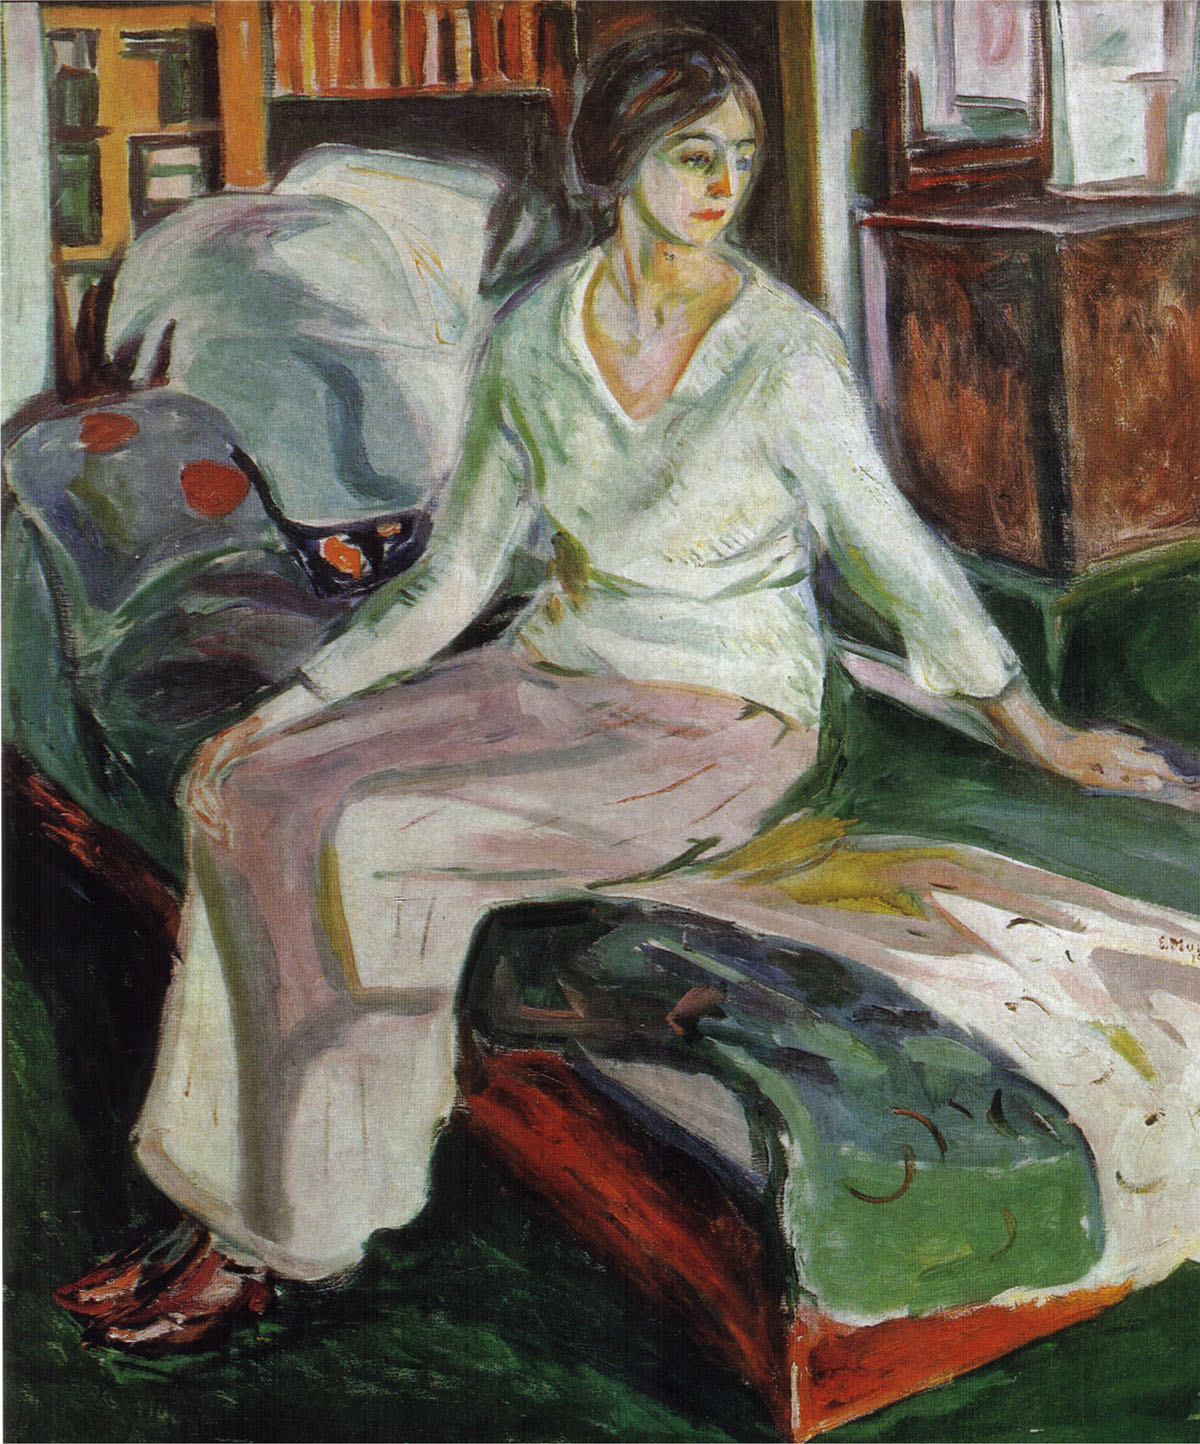 edvard-munch-model-on-the-couch